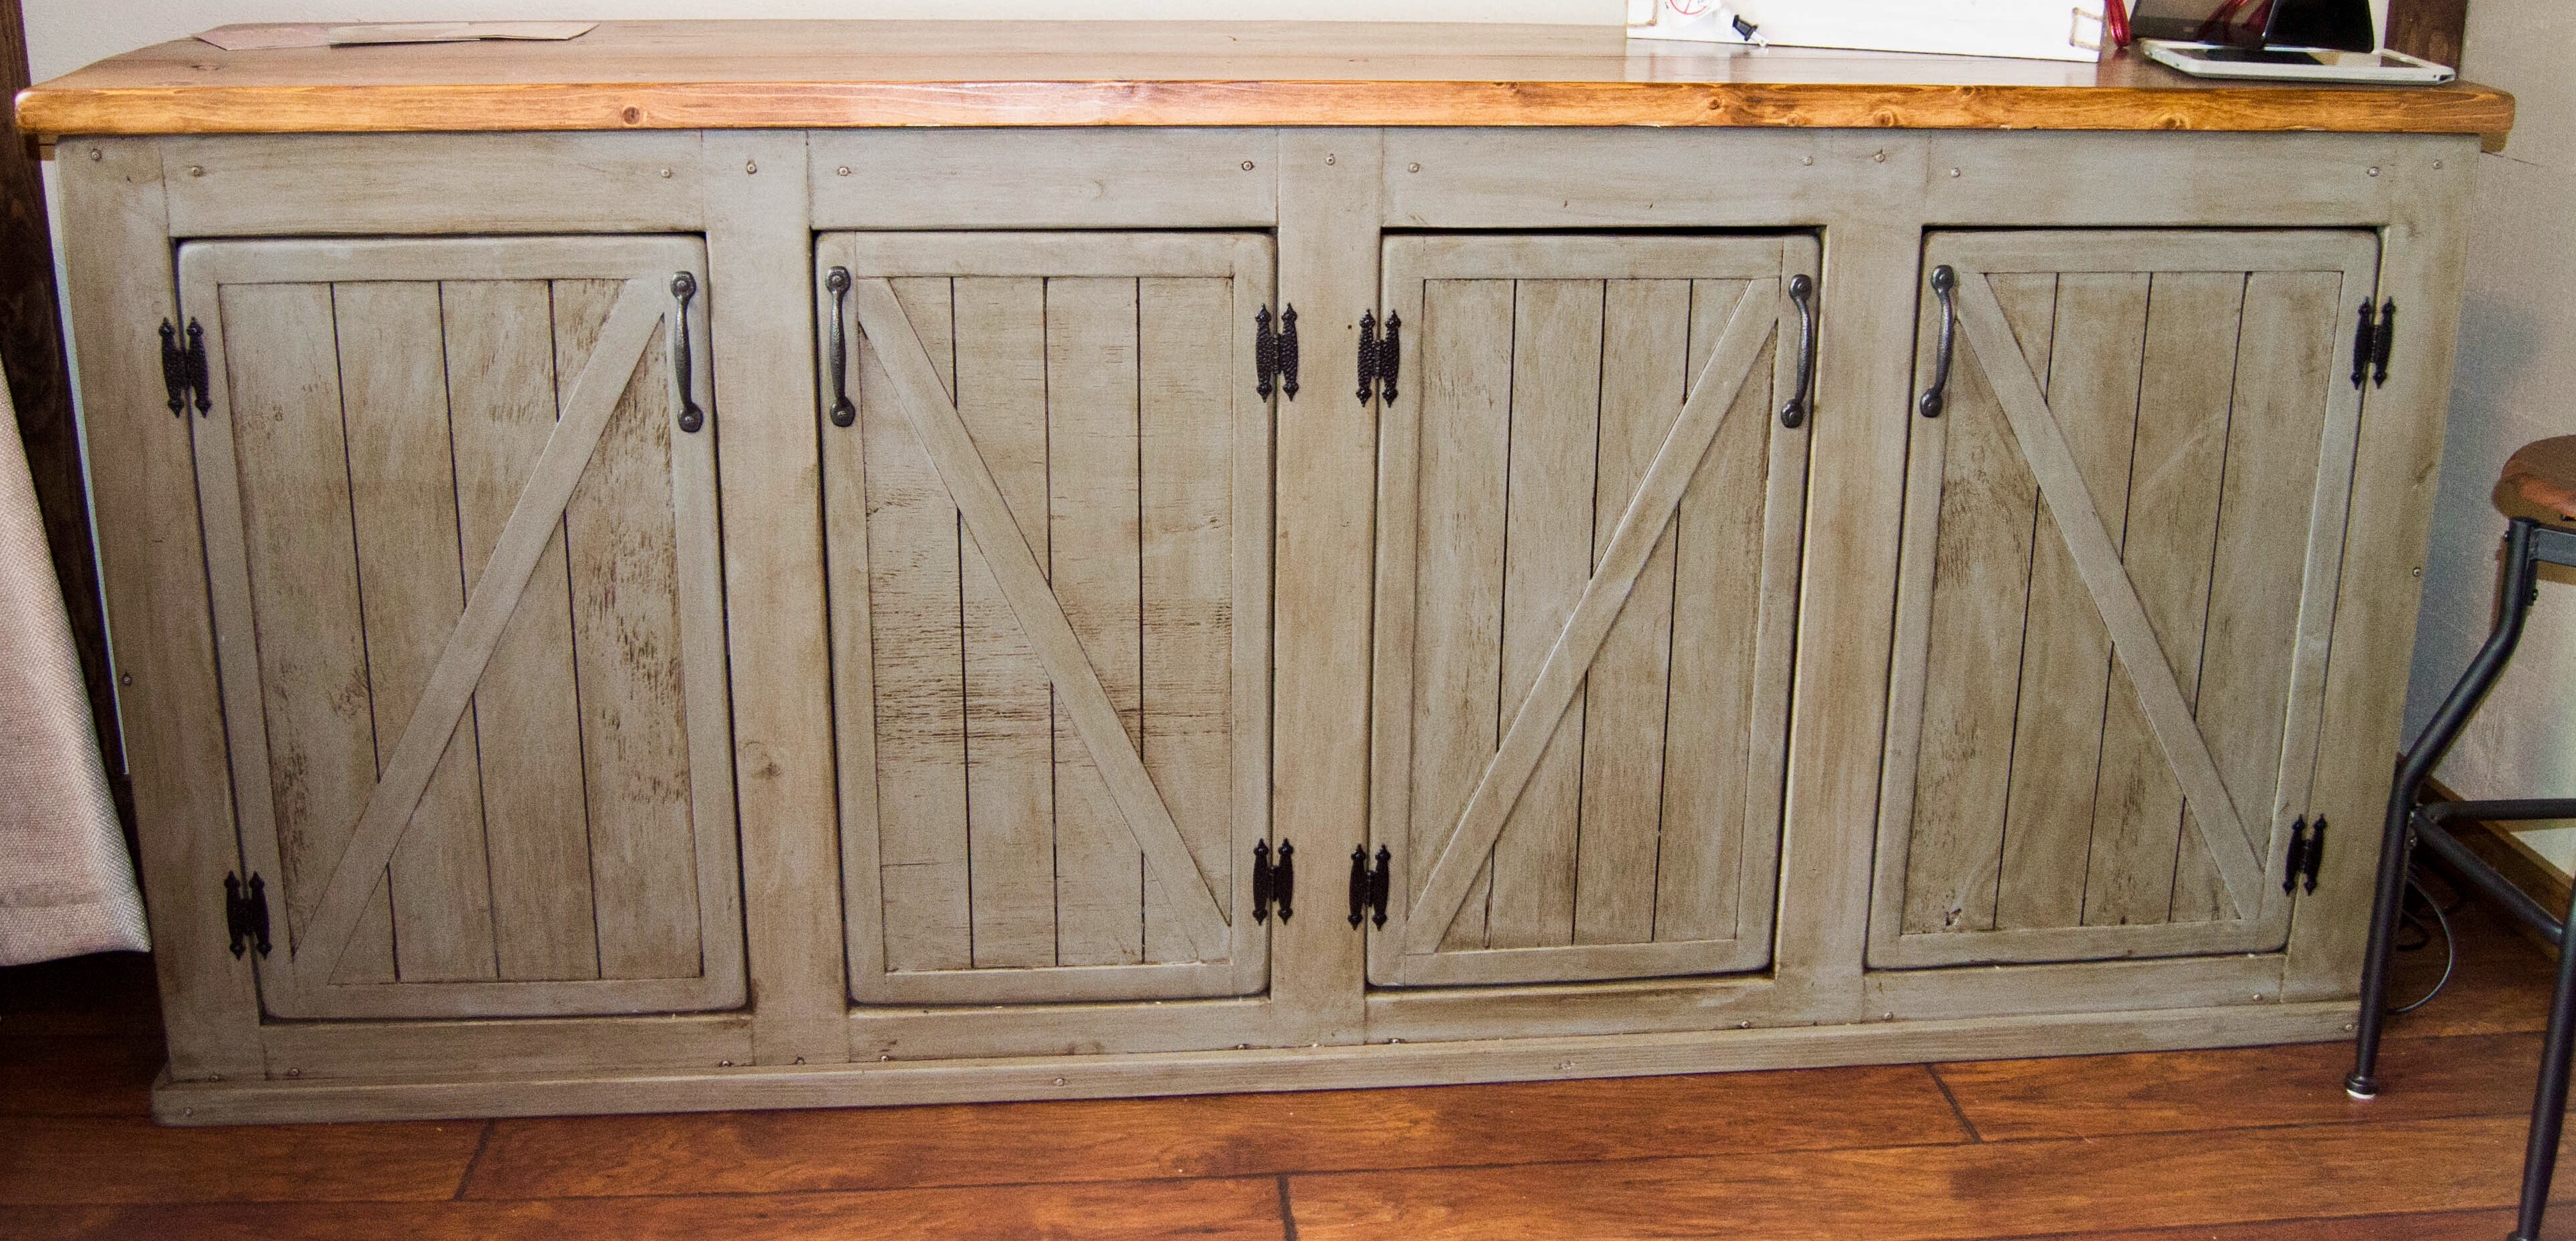 Ana White | Scrapped the Sliding Barn Doors, Rustic Cabinet Doors ...